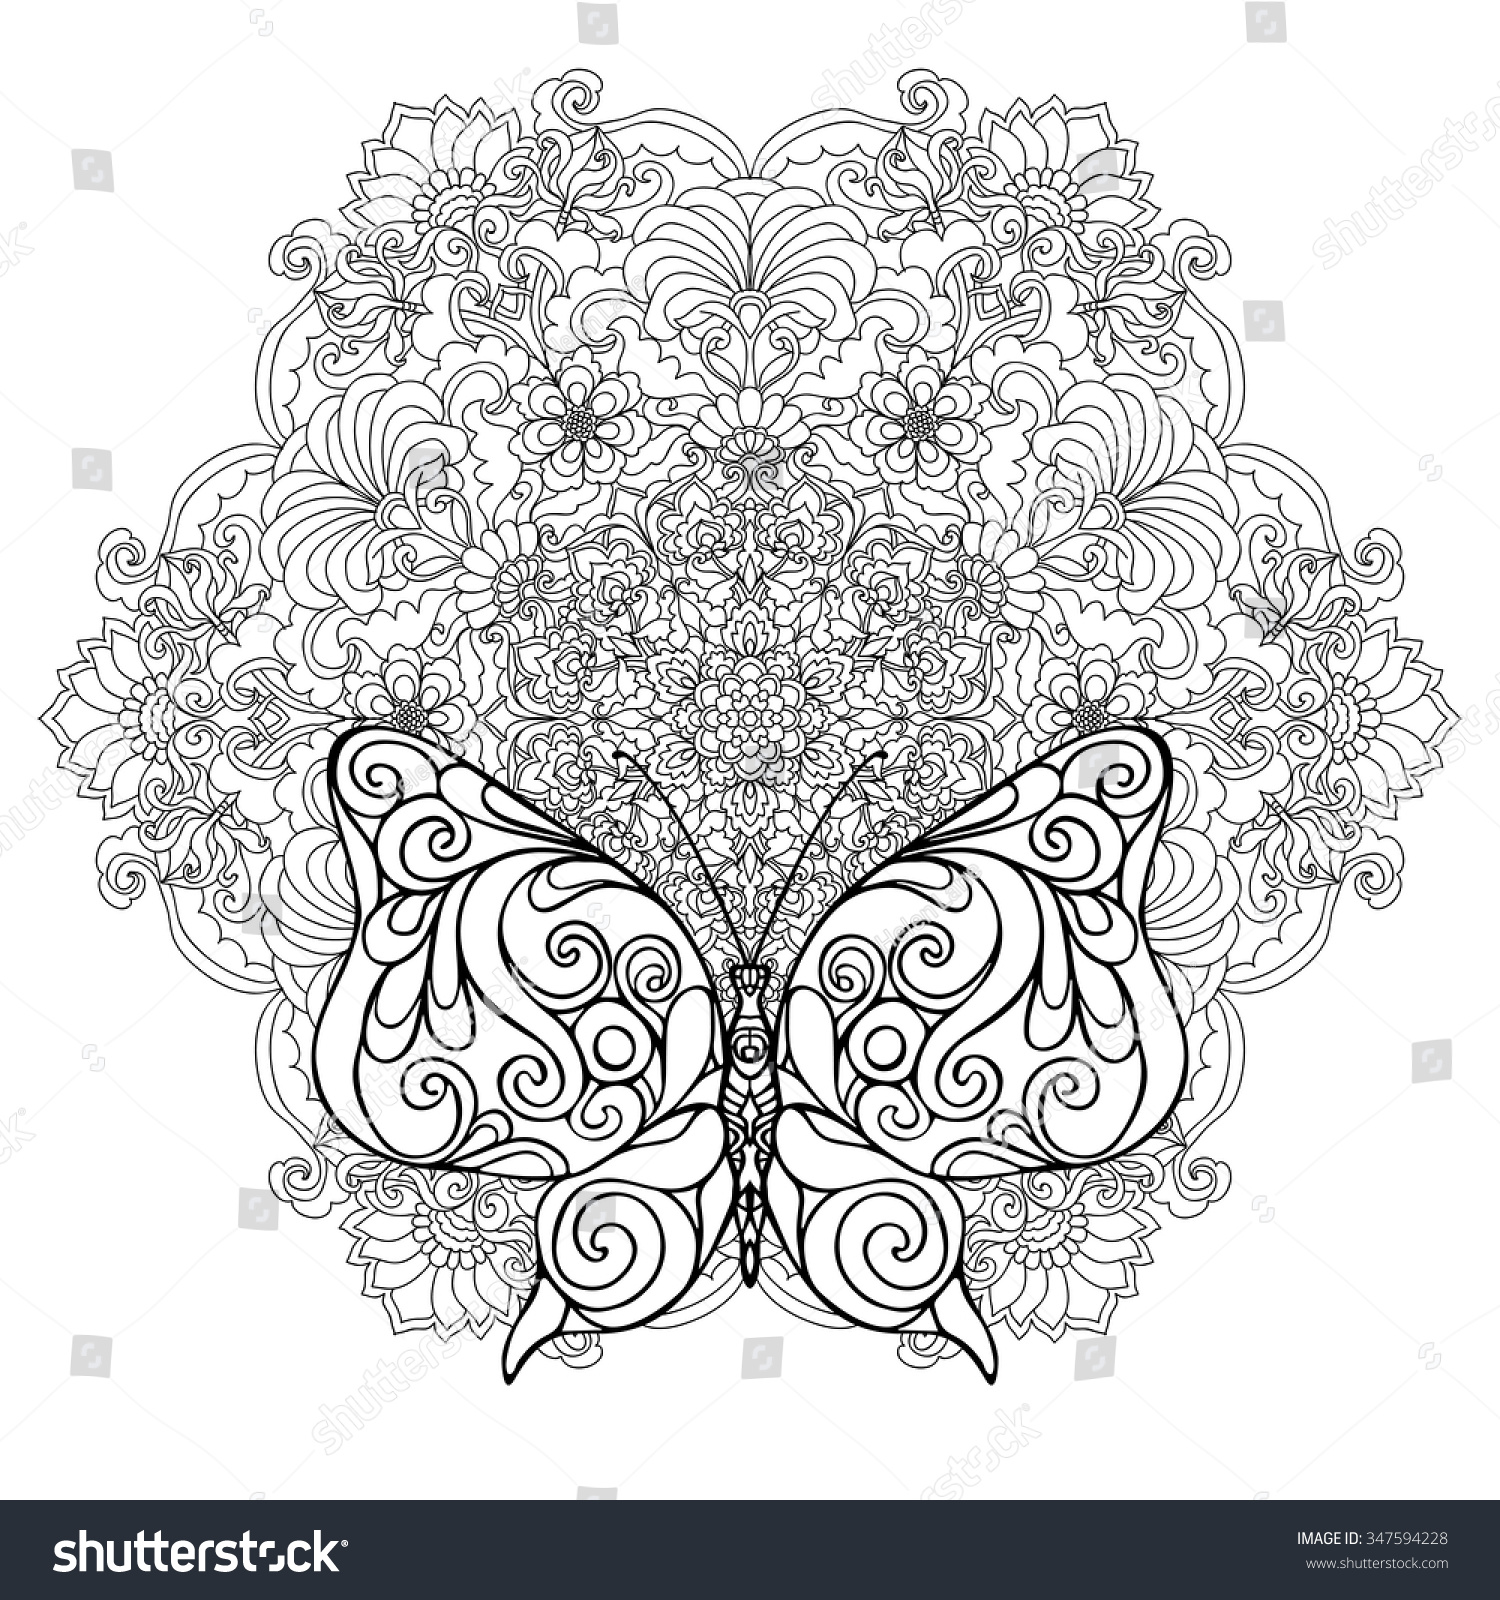 Butterfly Floral Mandala Coloring Book Adult Stock Vector 347594228 ...